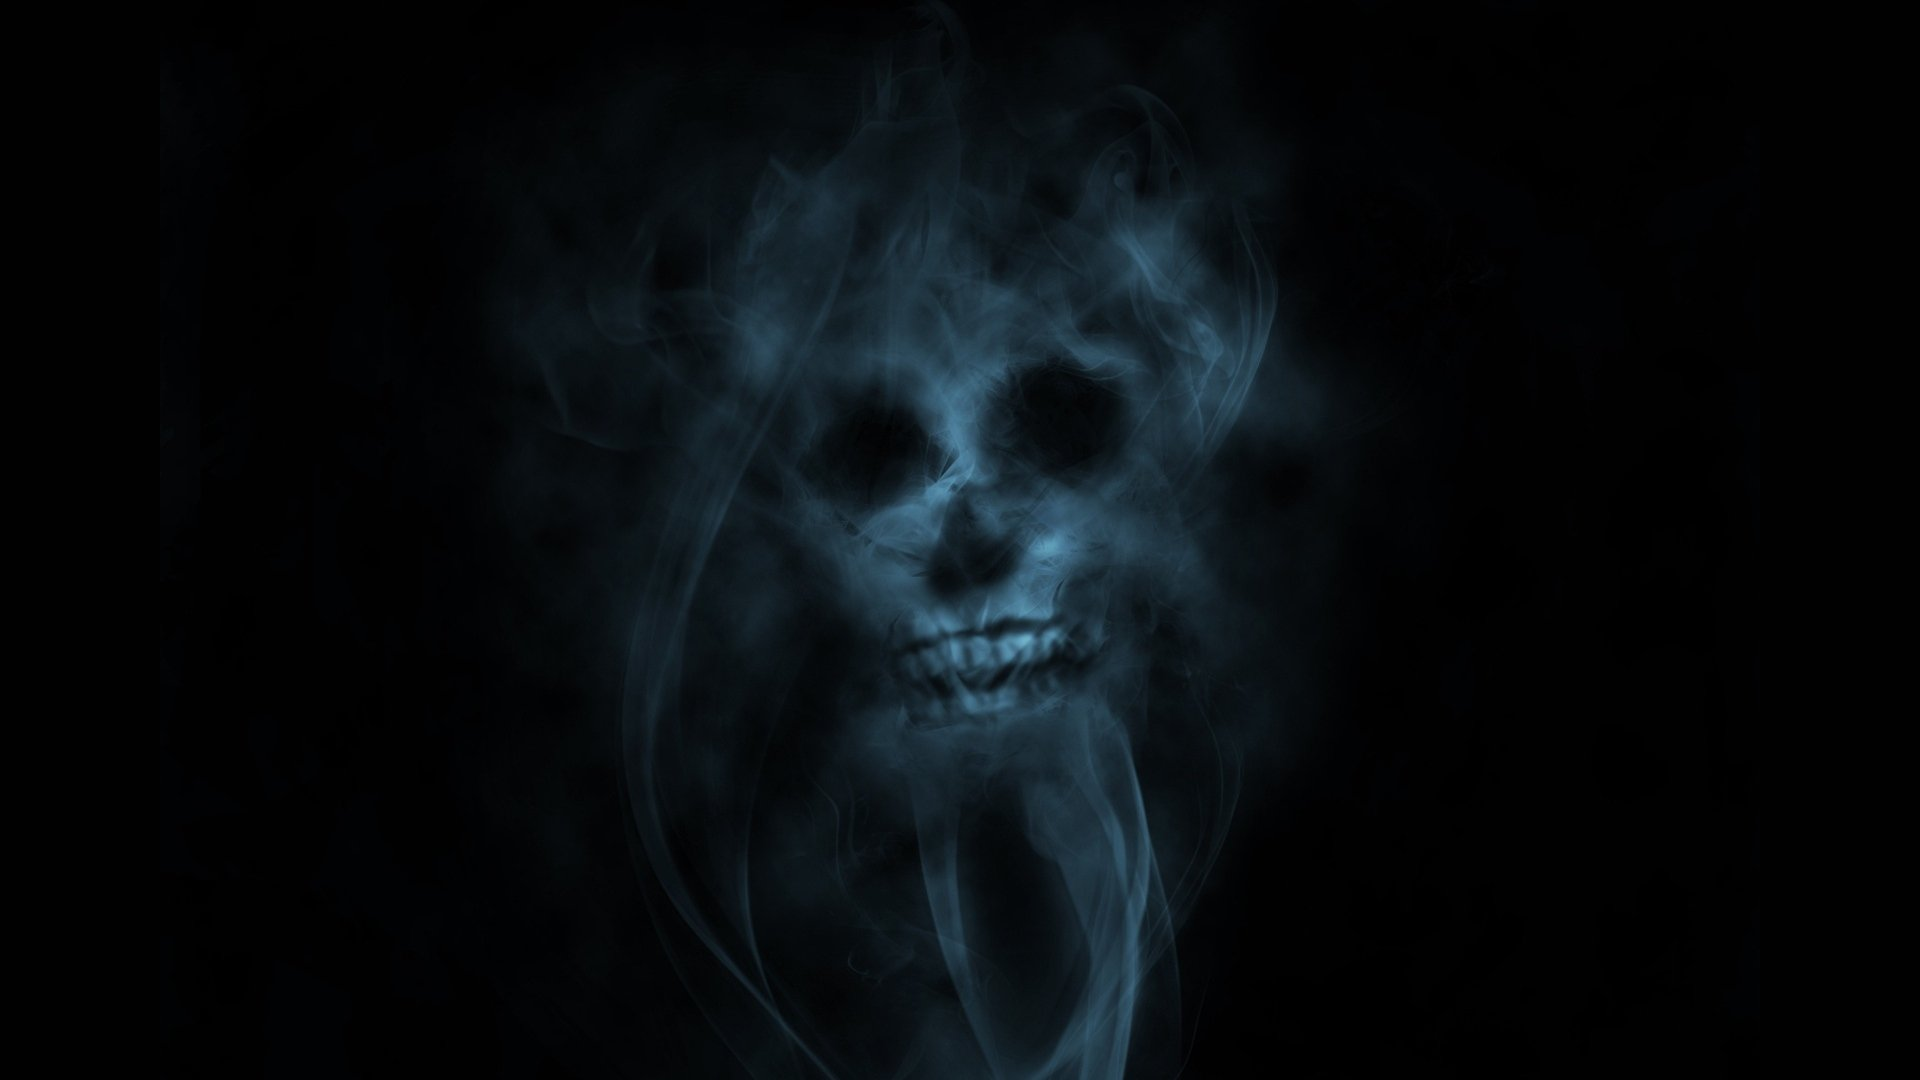 hd 1080p wallpaper smoke - photo #8